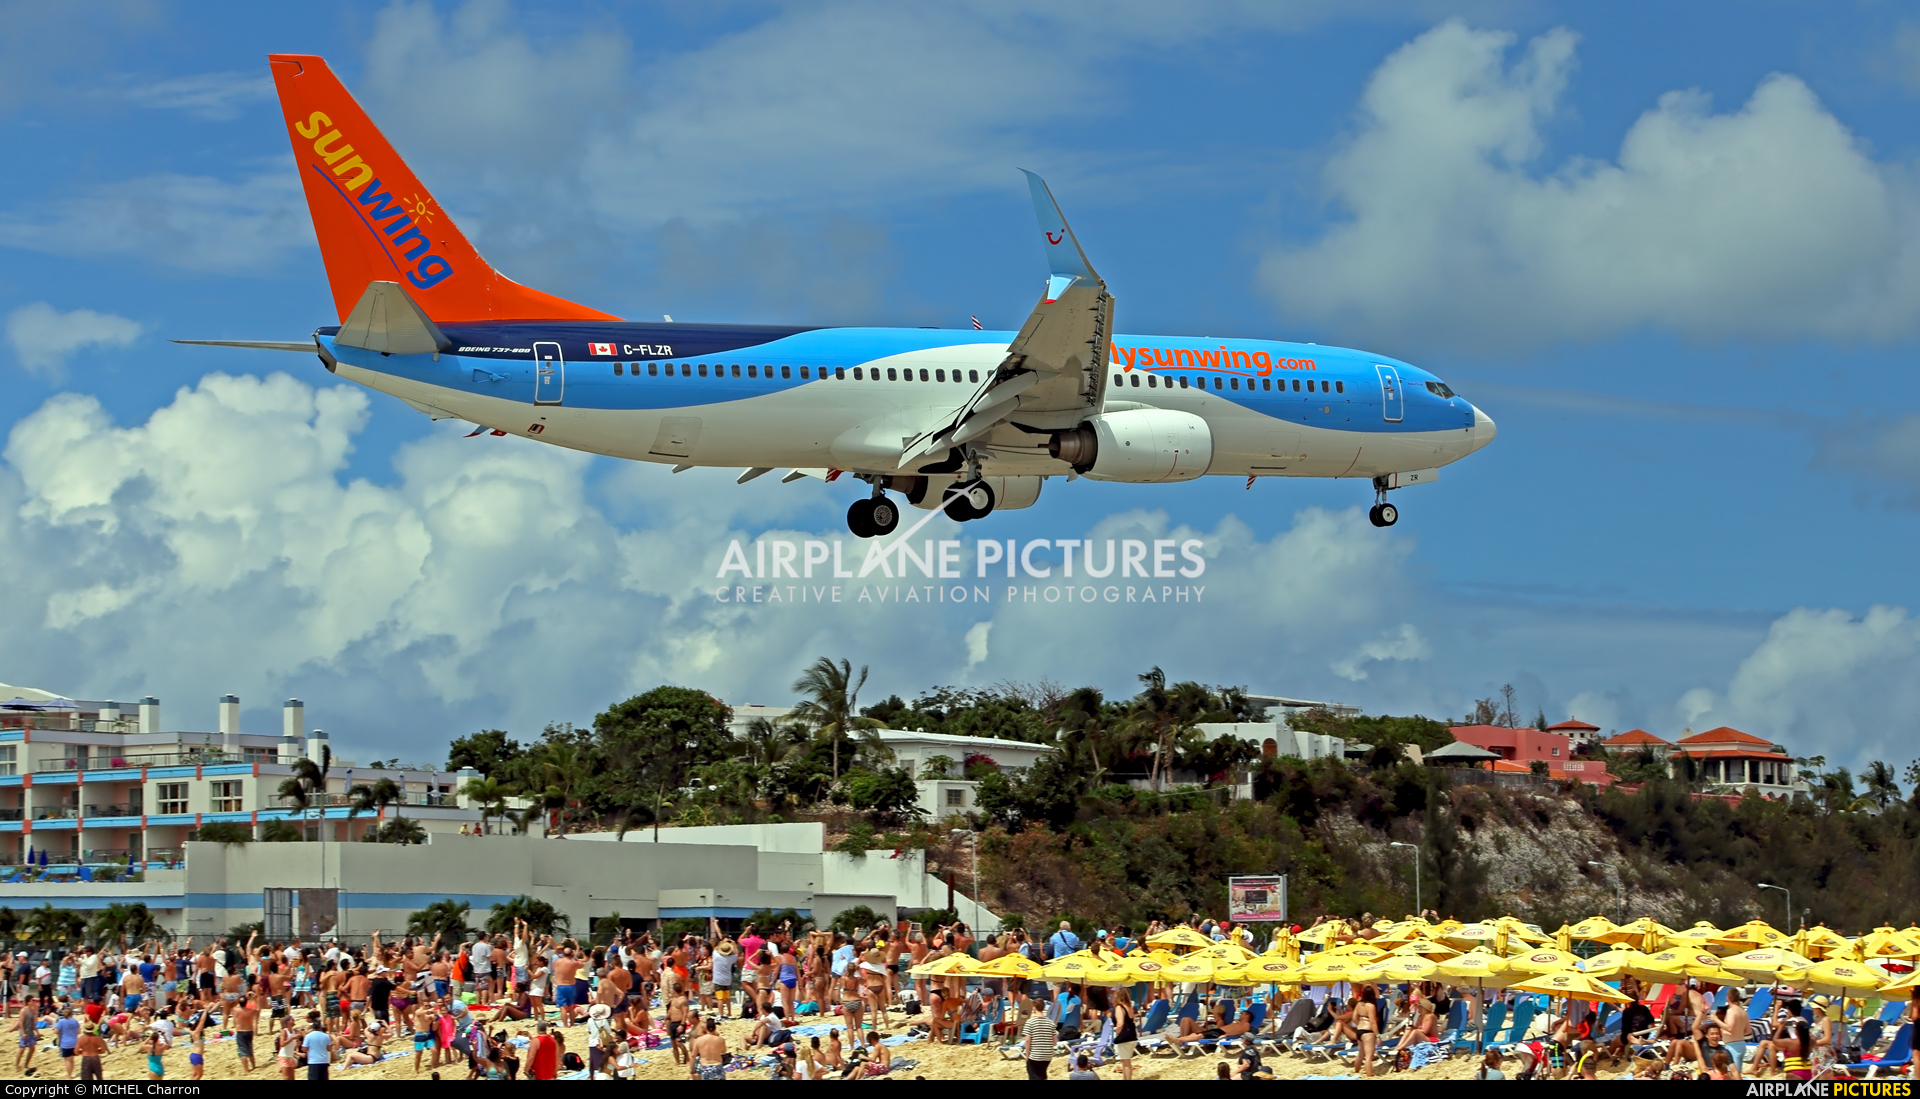 Sunwing Airlines C-FLZR aircraft at Sint Maarten - Princess Juliana Intl